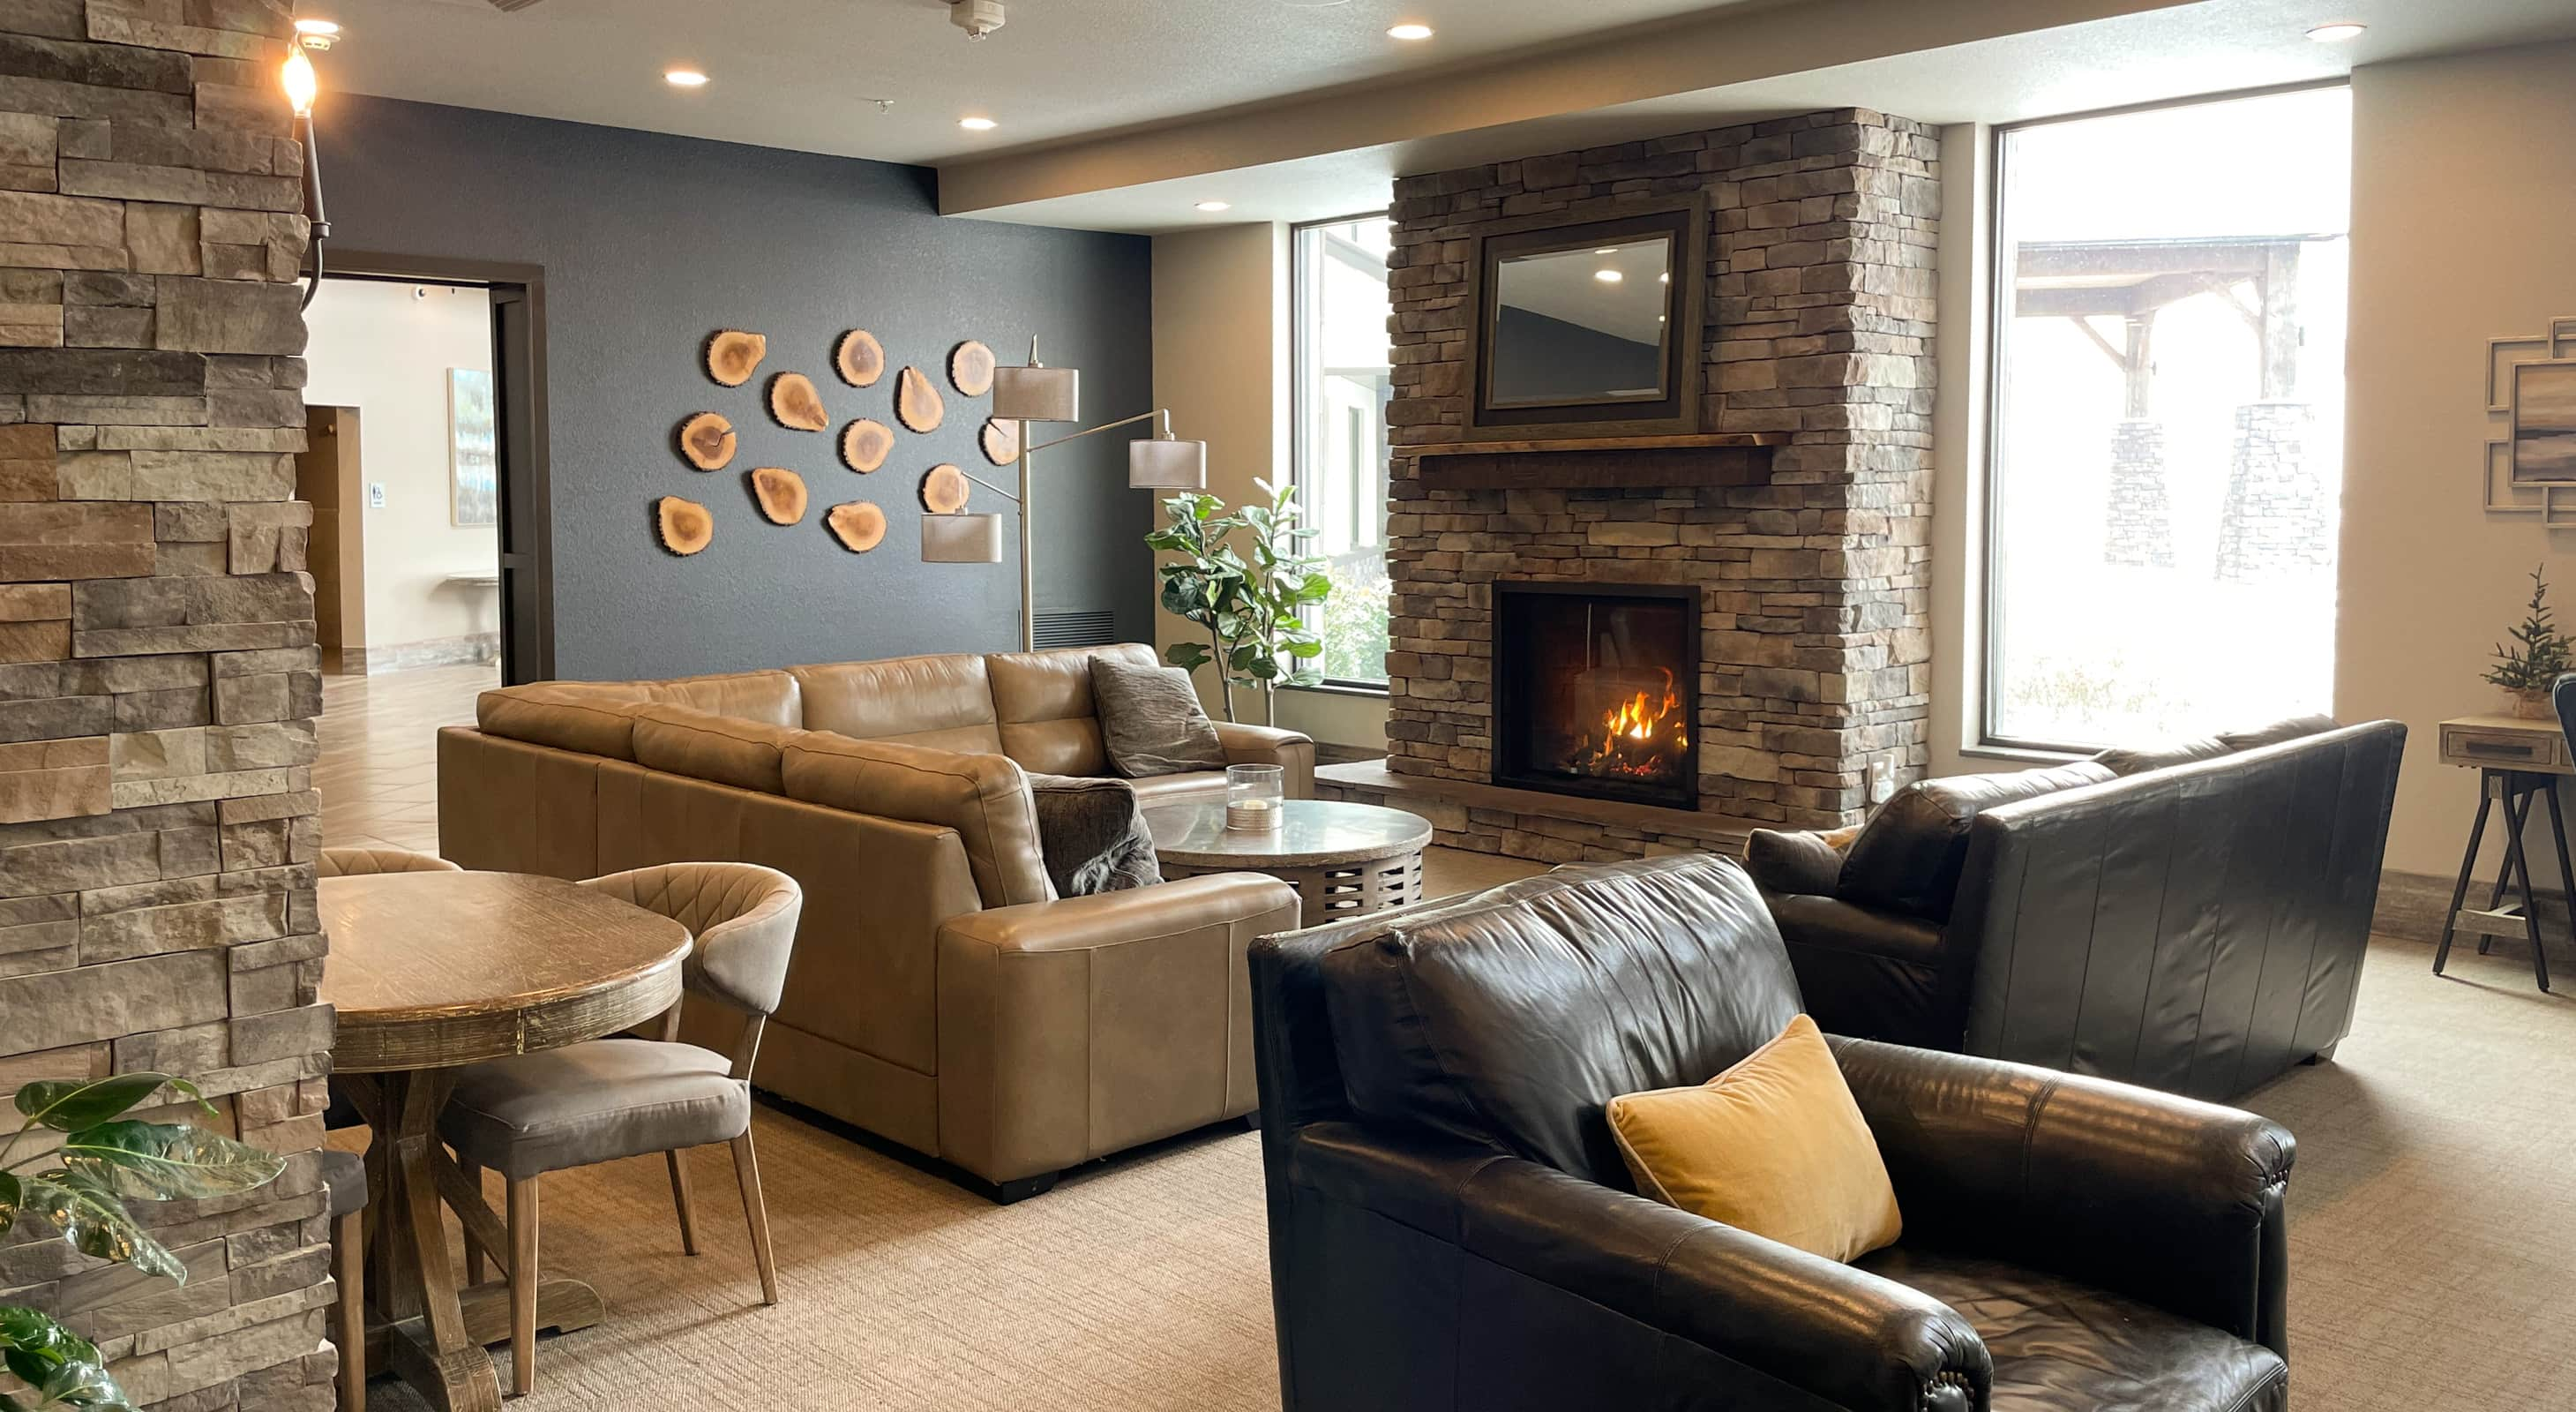 Spacious seating area with a fireplace at the Berlin Encore Hotel